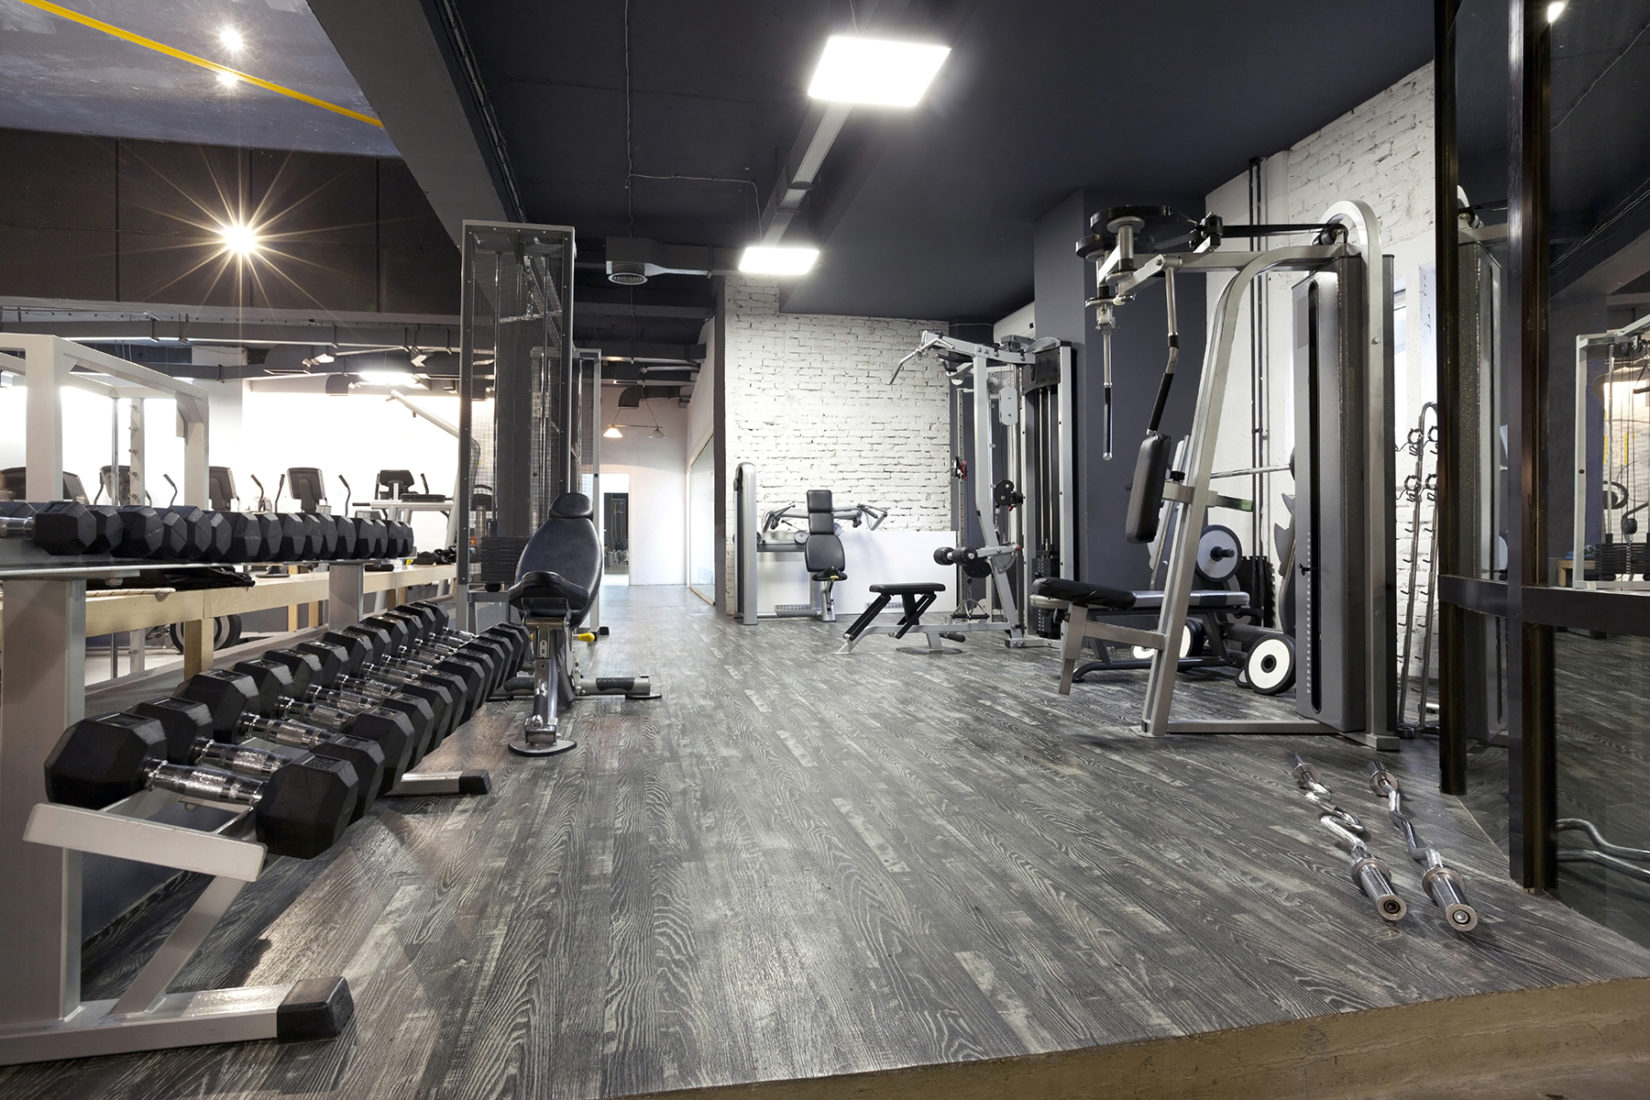 gym with racks of weights and machines with modern decor and design